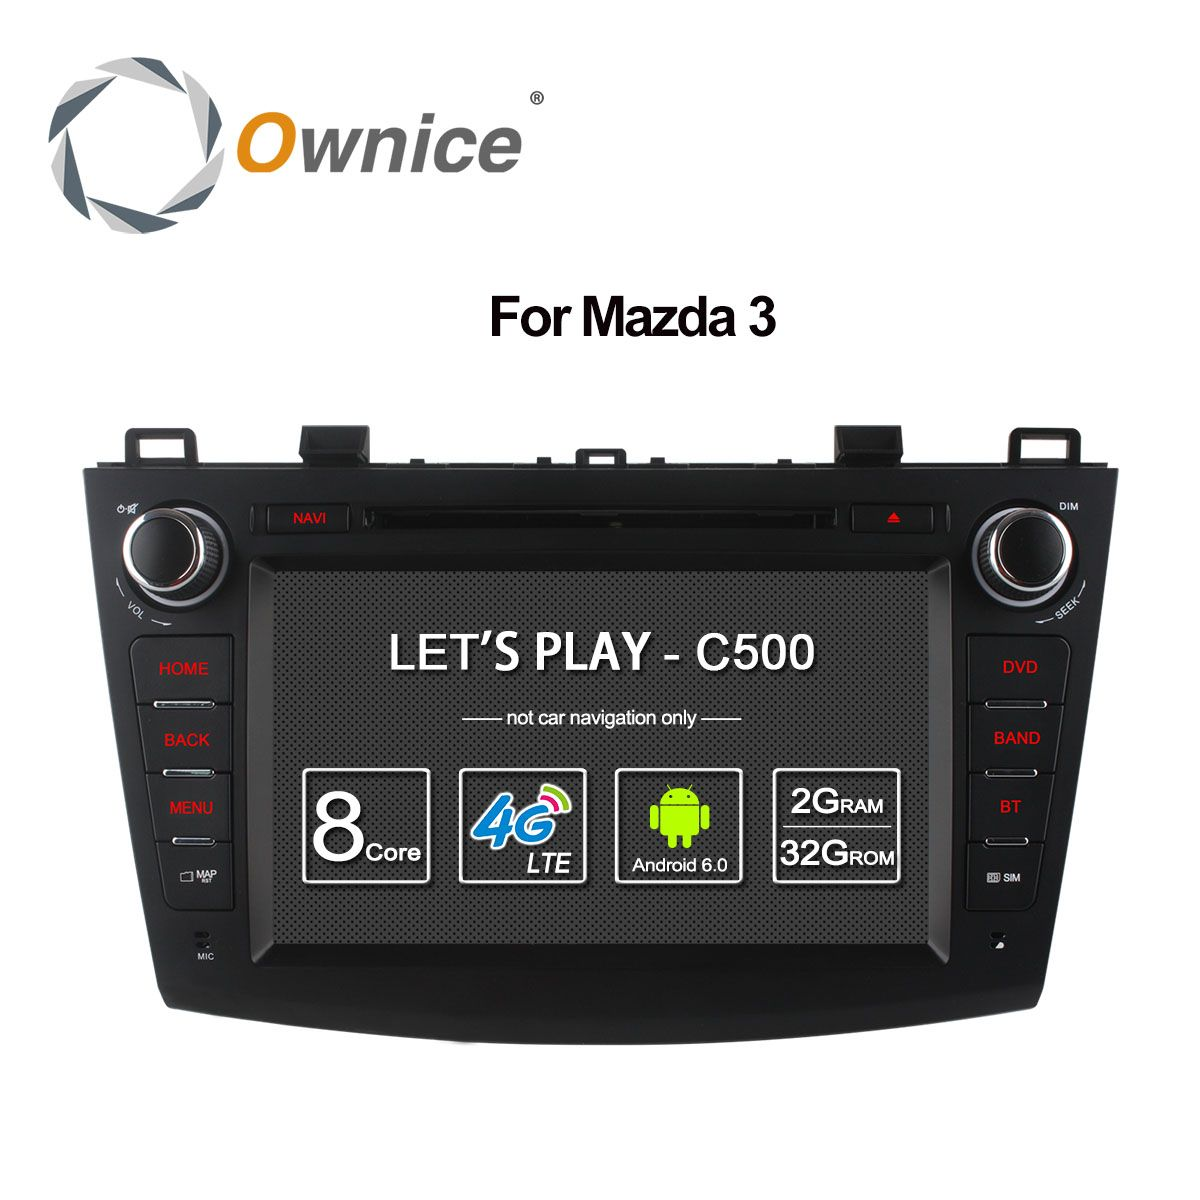 Ownice C500 Octa 8 Core Android 6.0 Car DVD player For Mazda 3 2008-2013 WIFI Radio GPS Navi OBD DVR 2GB RAM 32GB ROM Support 4G